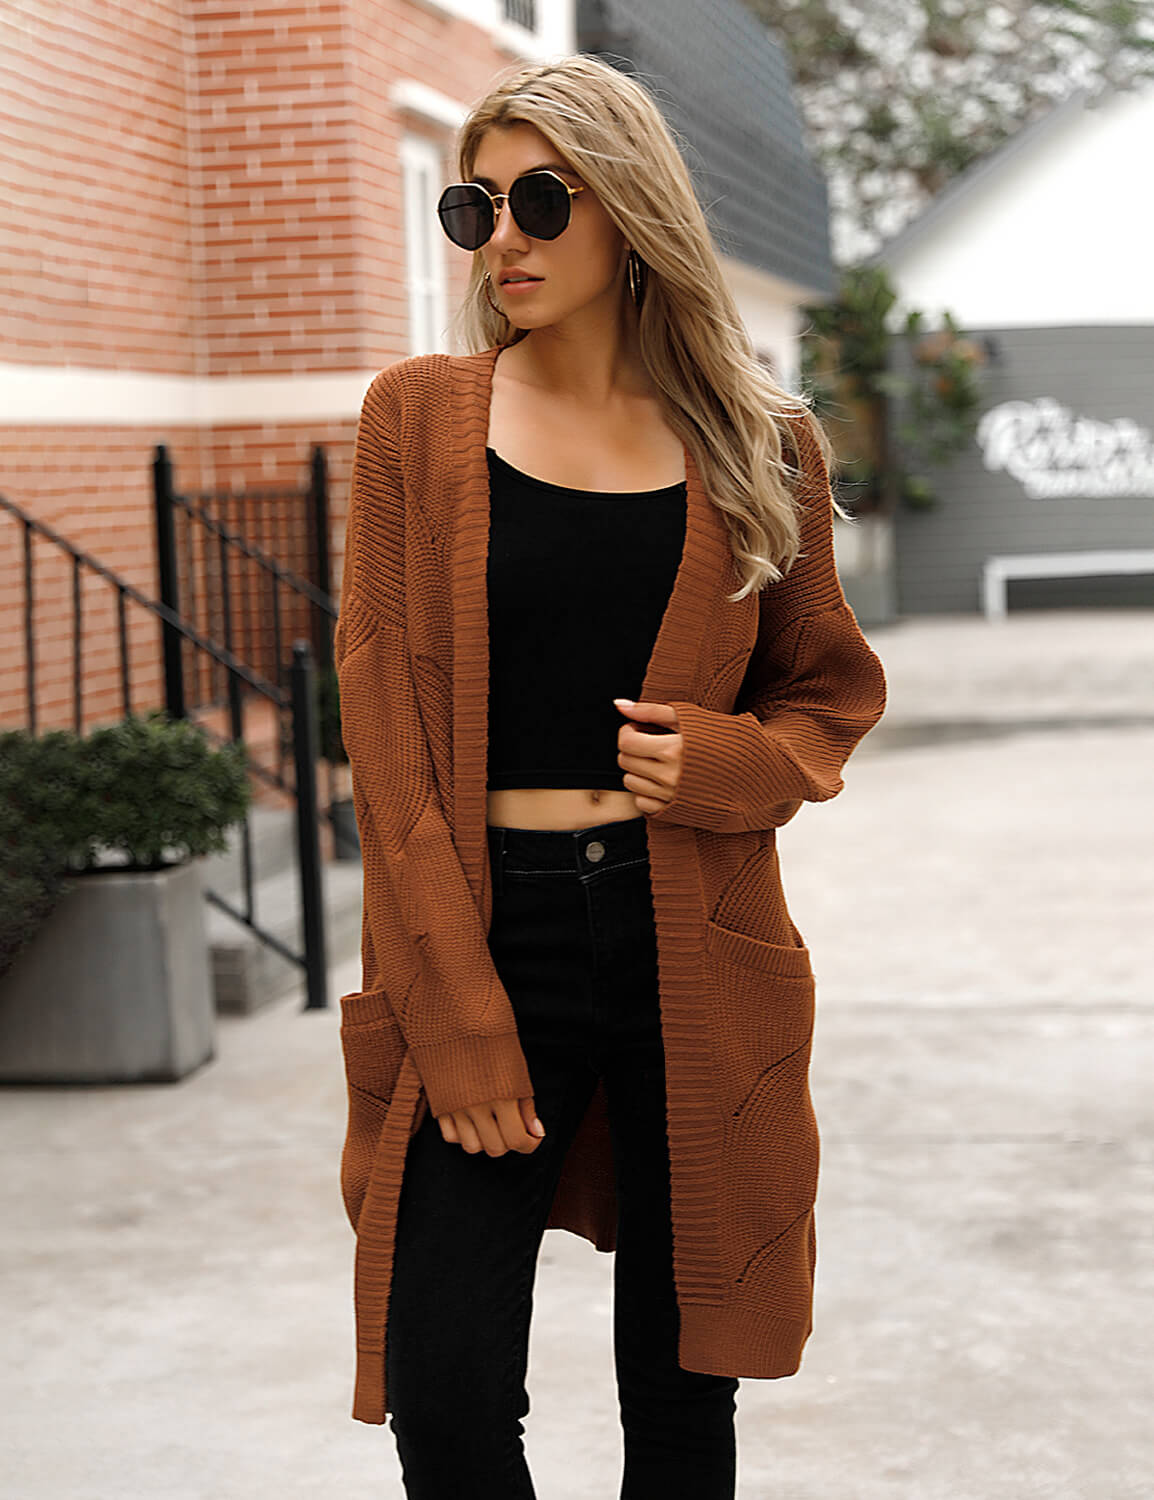 Blooming Jelly_Graceful Warm Cardigan Sweater_Brown_292070_32_Women Casual Street Wear_Tops_Cardigan